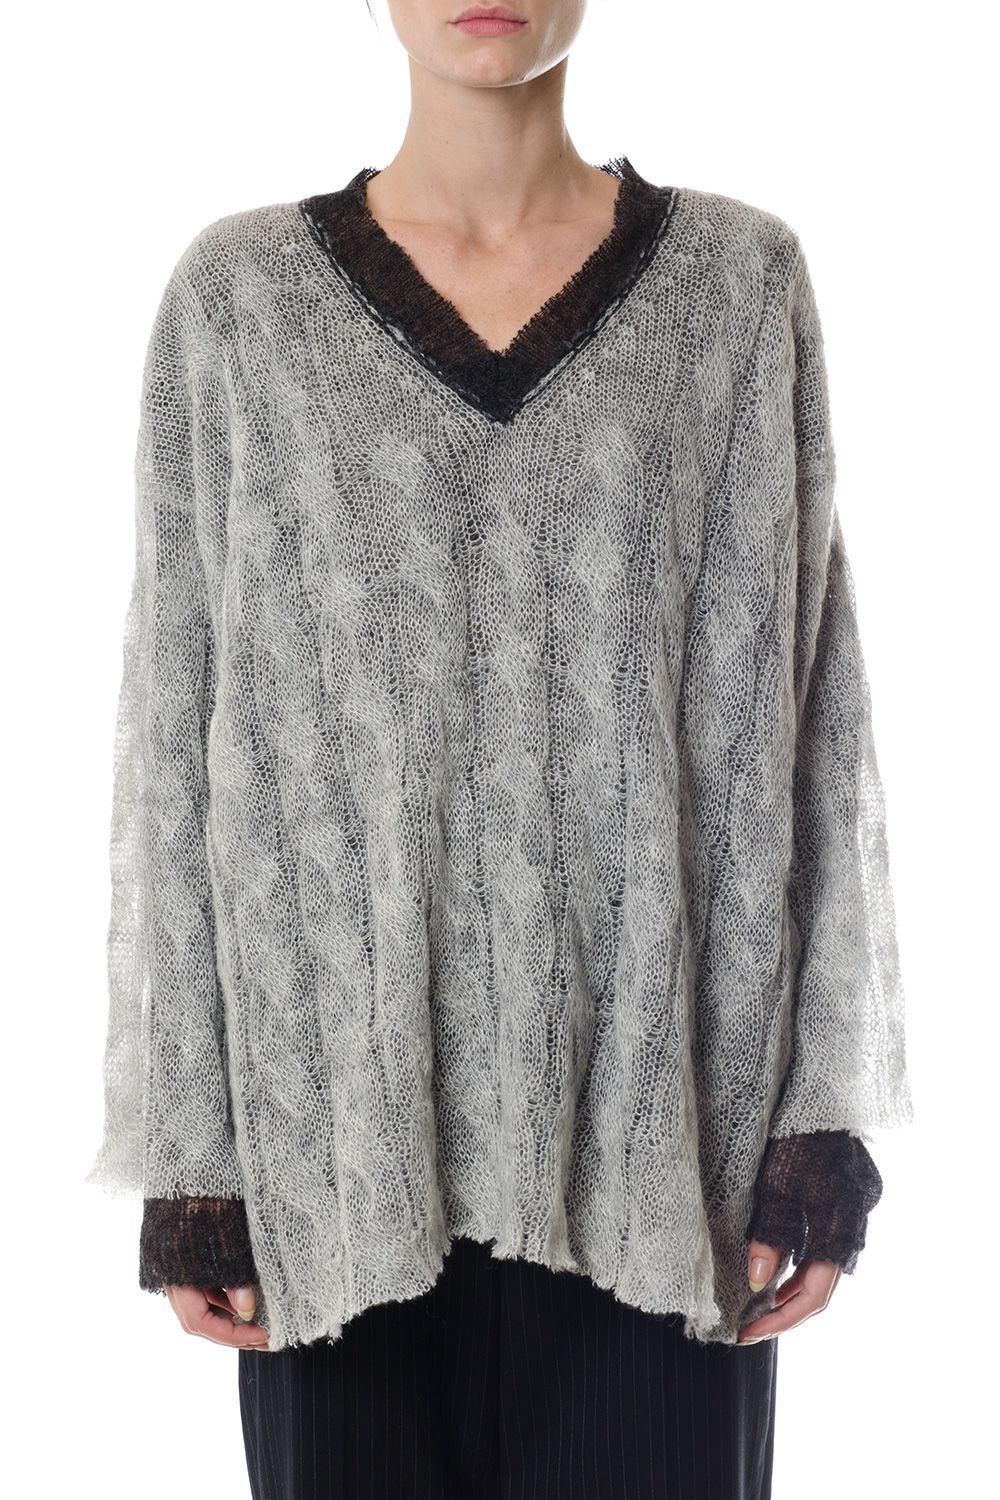 Maison Margiela  WOOL-ALPACA BLEND REVERSIBLE JUMPER